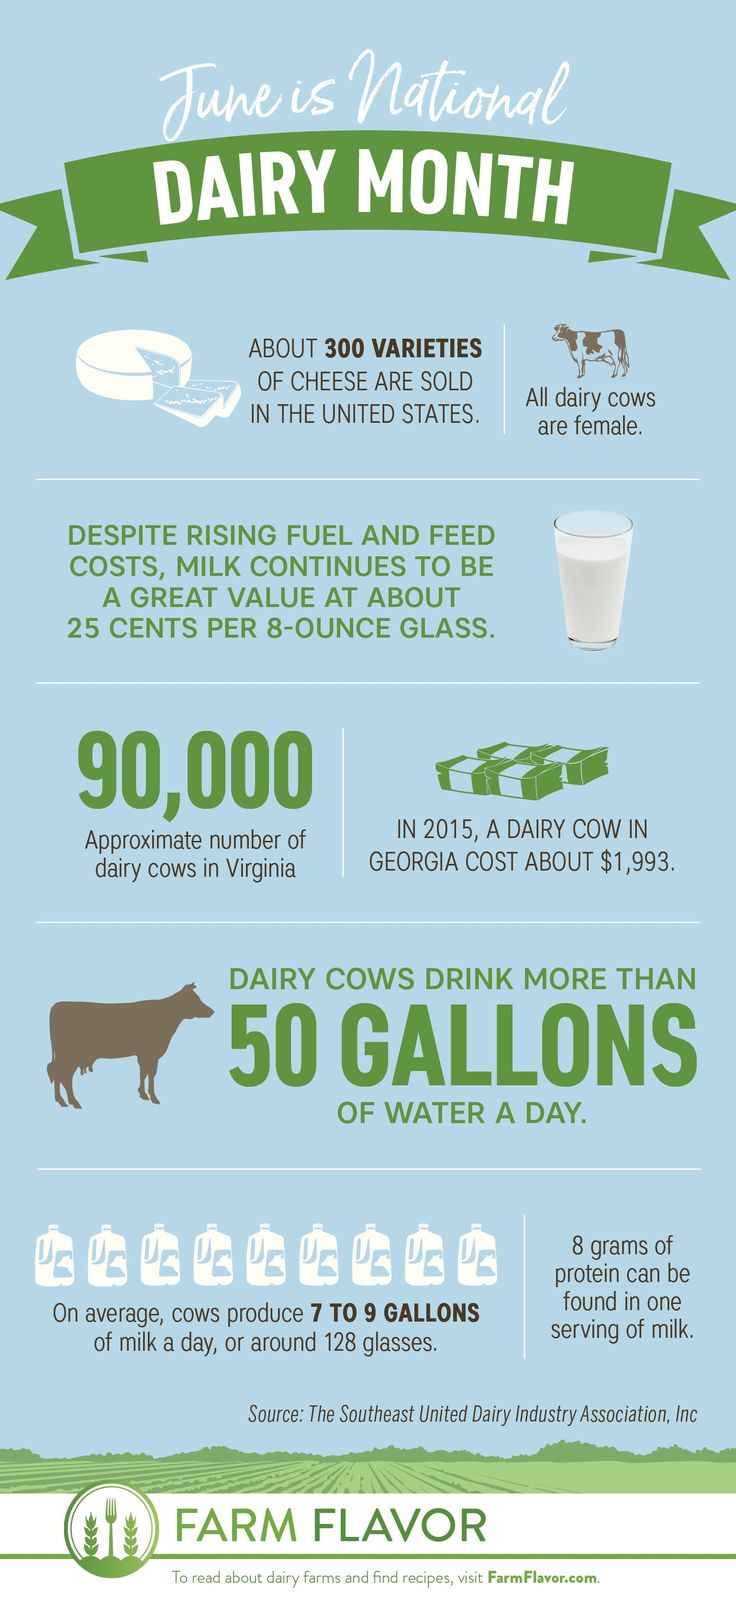 Celebrate National Dairy Month in June with Fun Facts